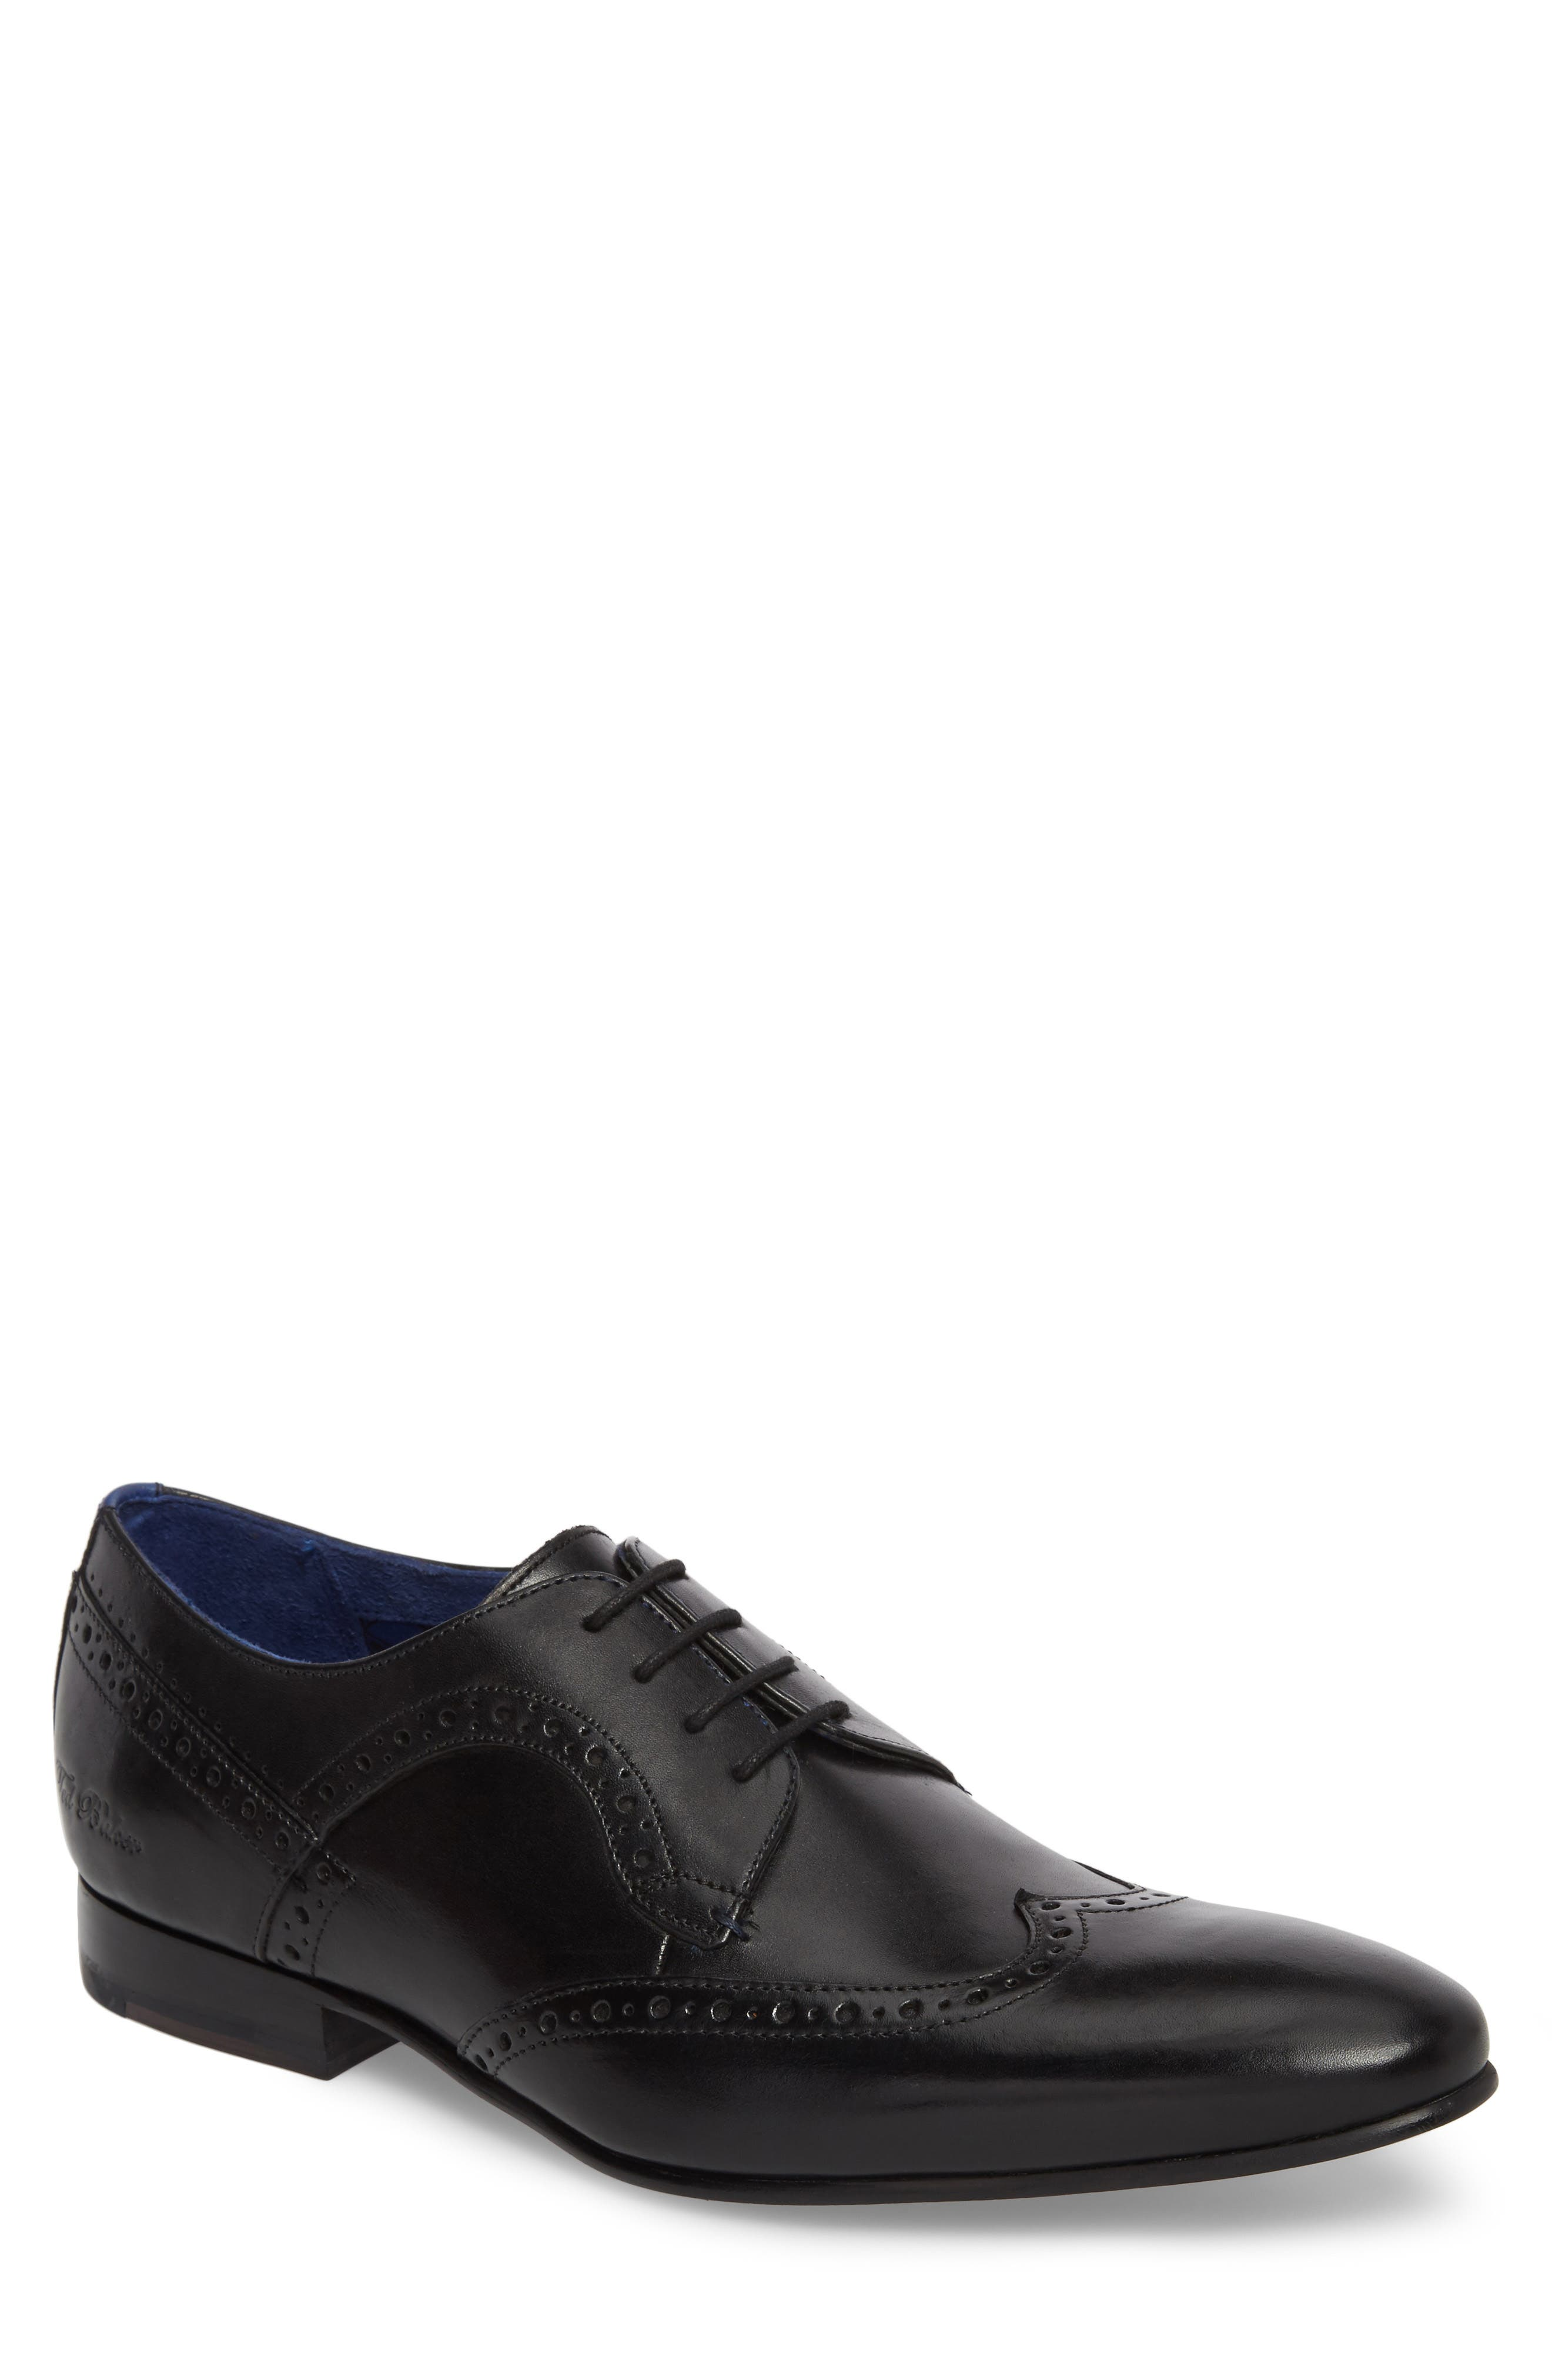 Ollivur Wingtip,                         Main,                         color, Black Leather